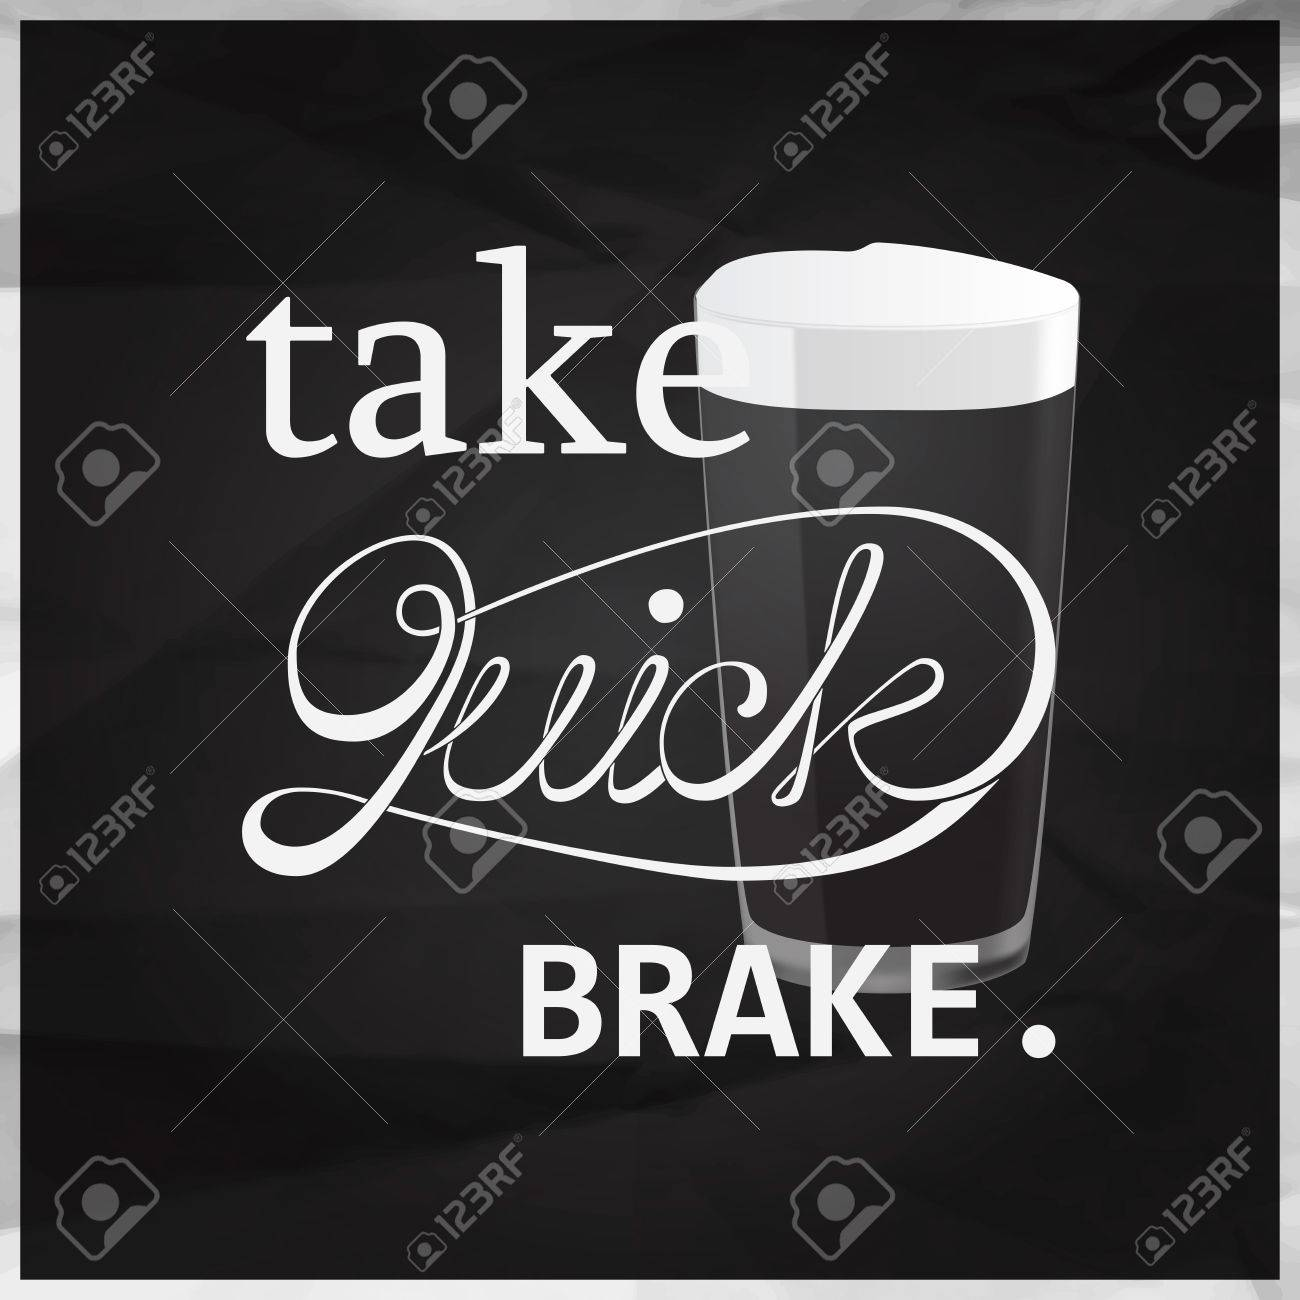 Brake Quotes Take Quick Brake Quotes With Pint Of Beer Calligraphy On Black